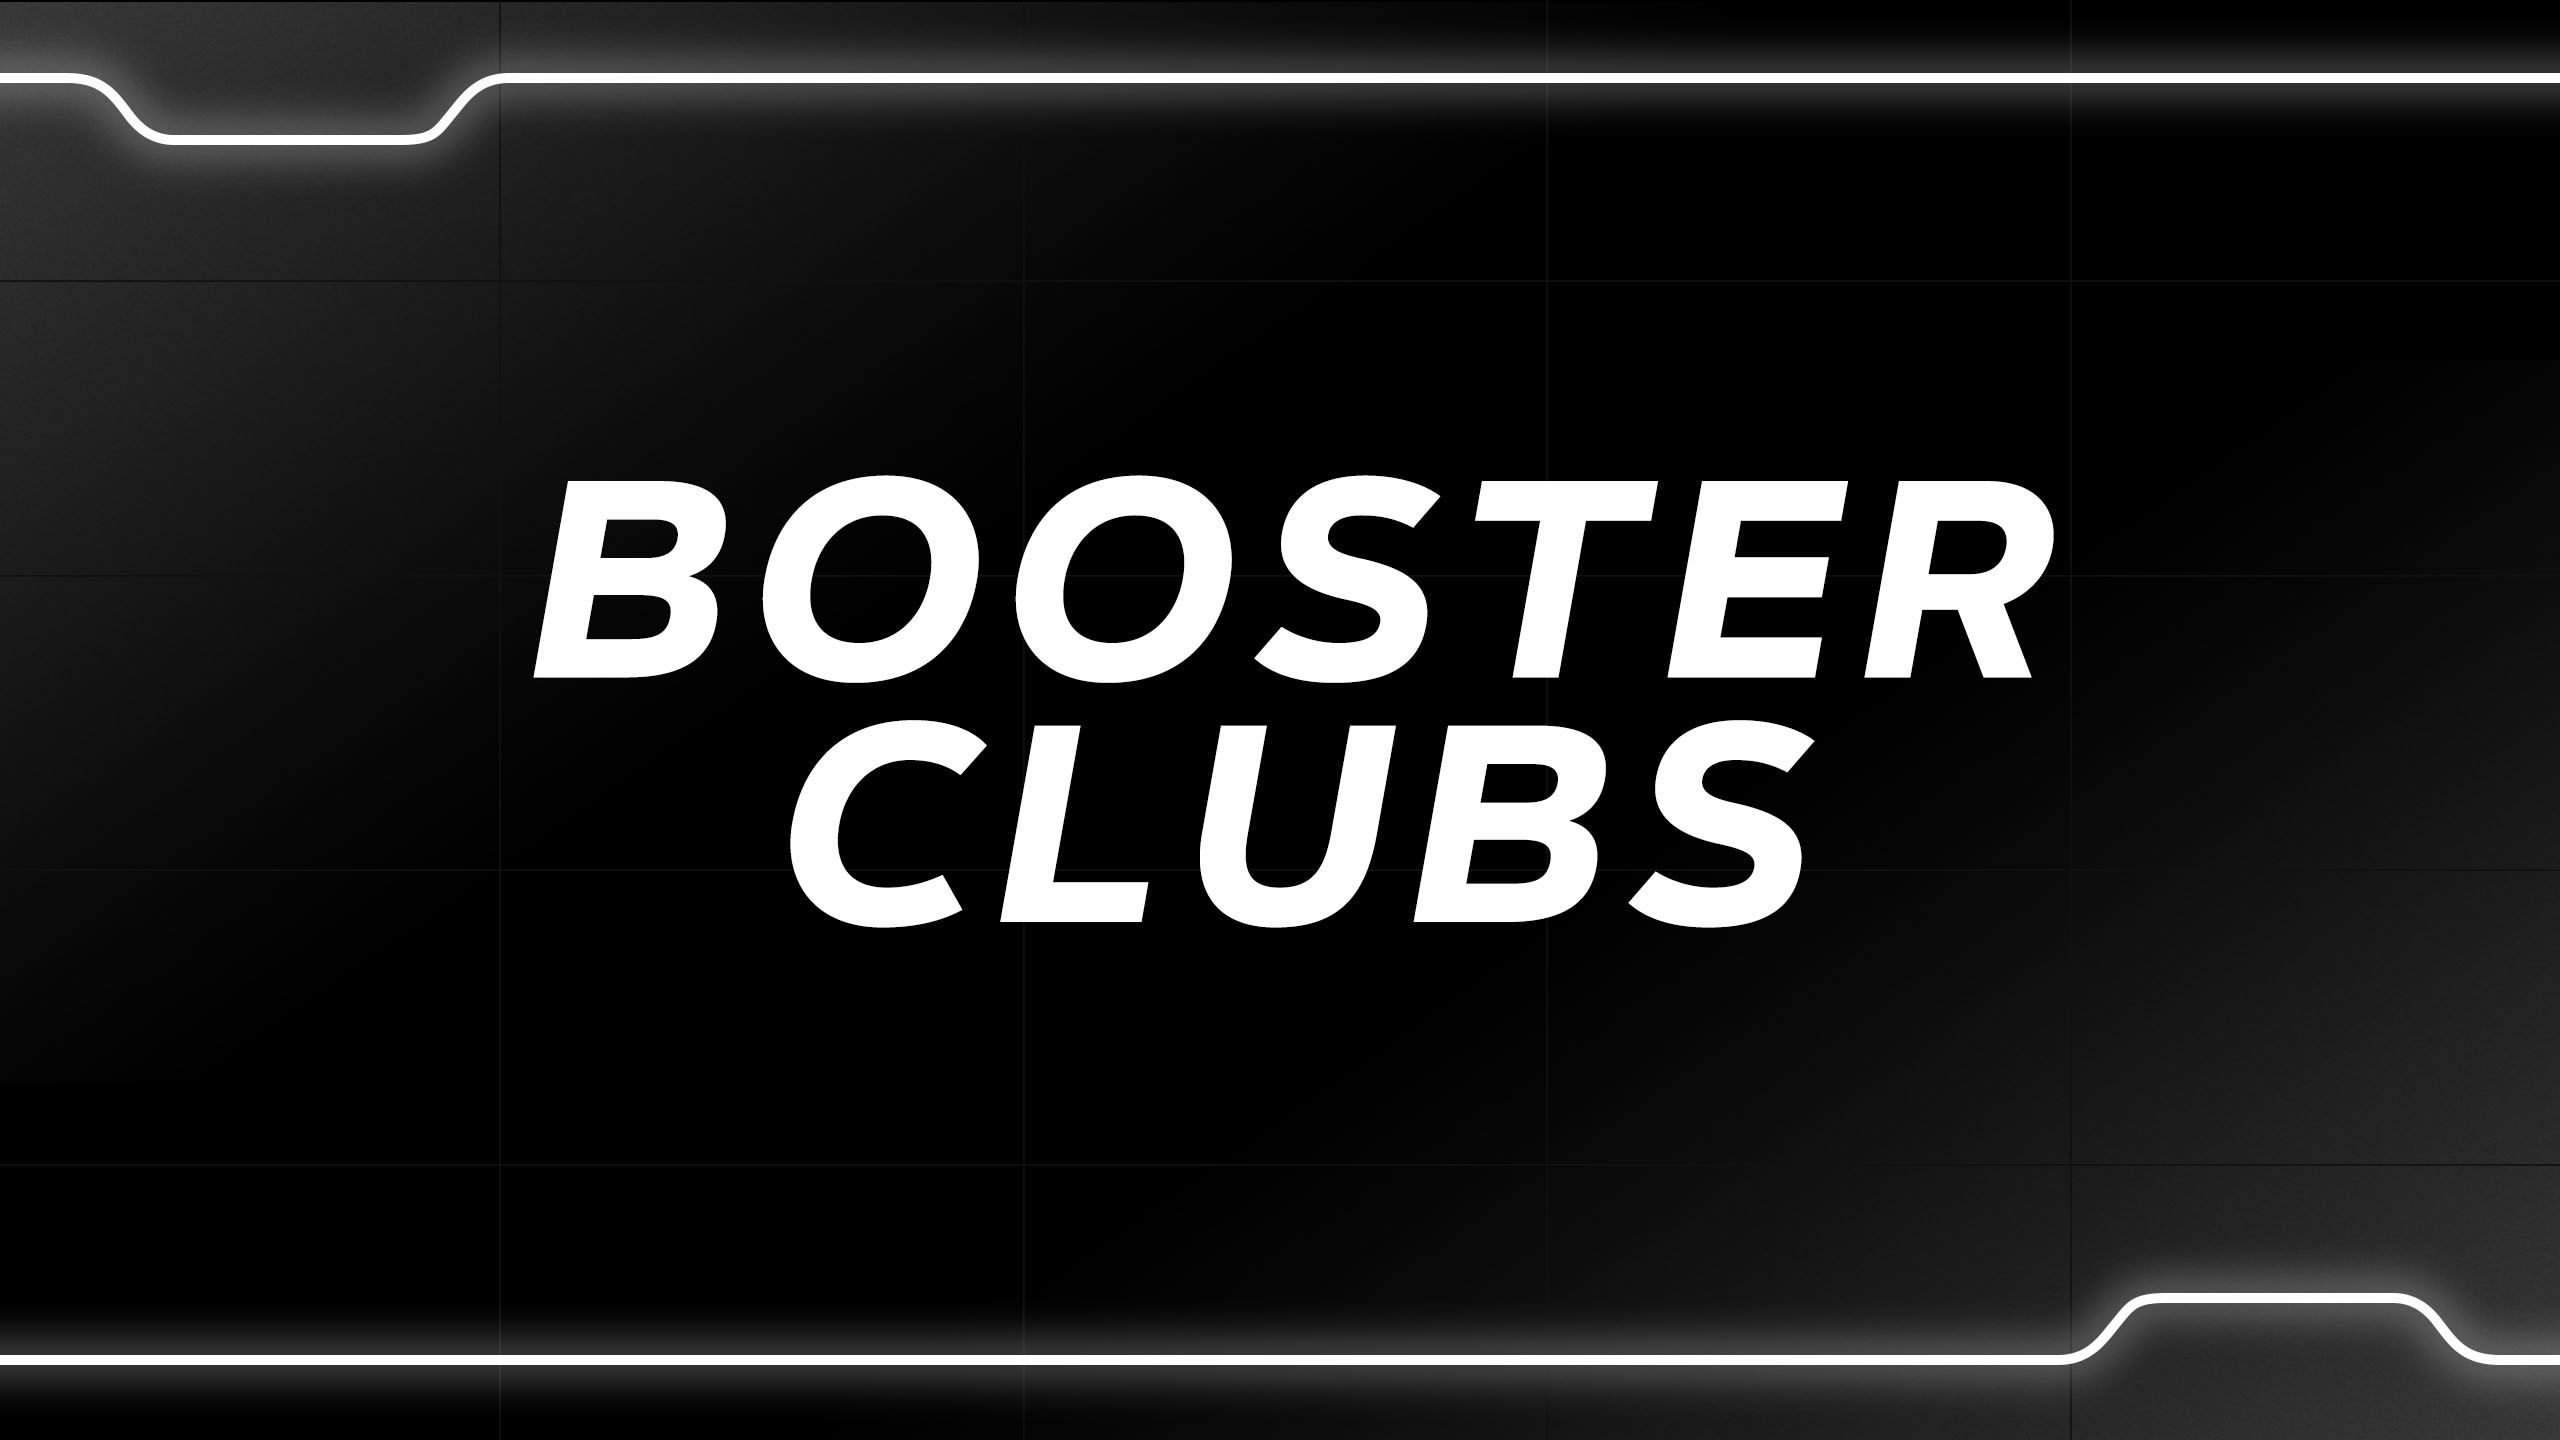 Raiders Booster Clubs